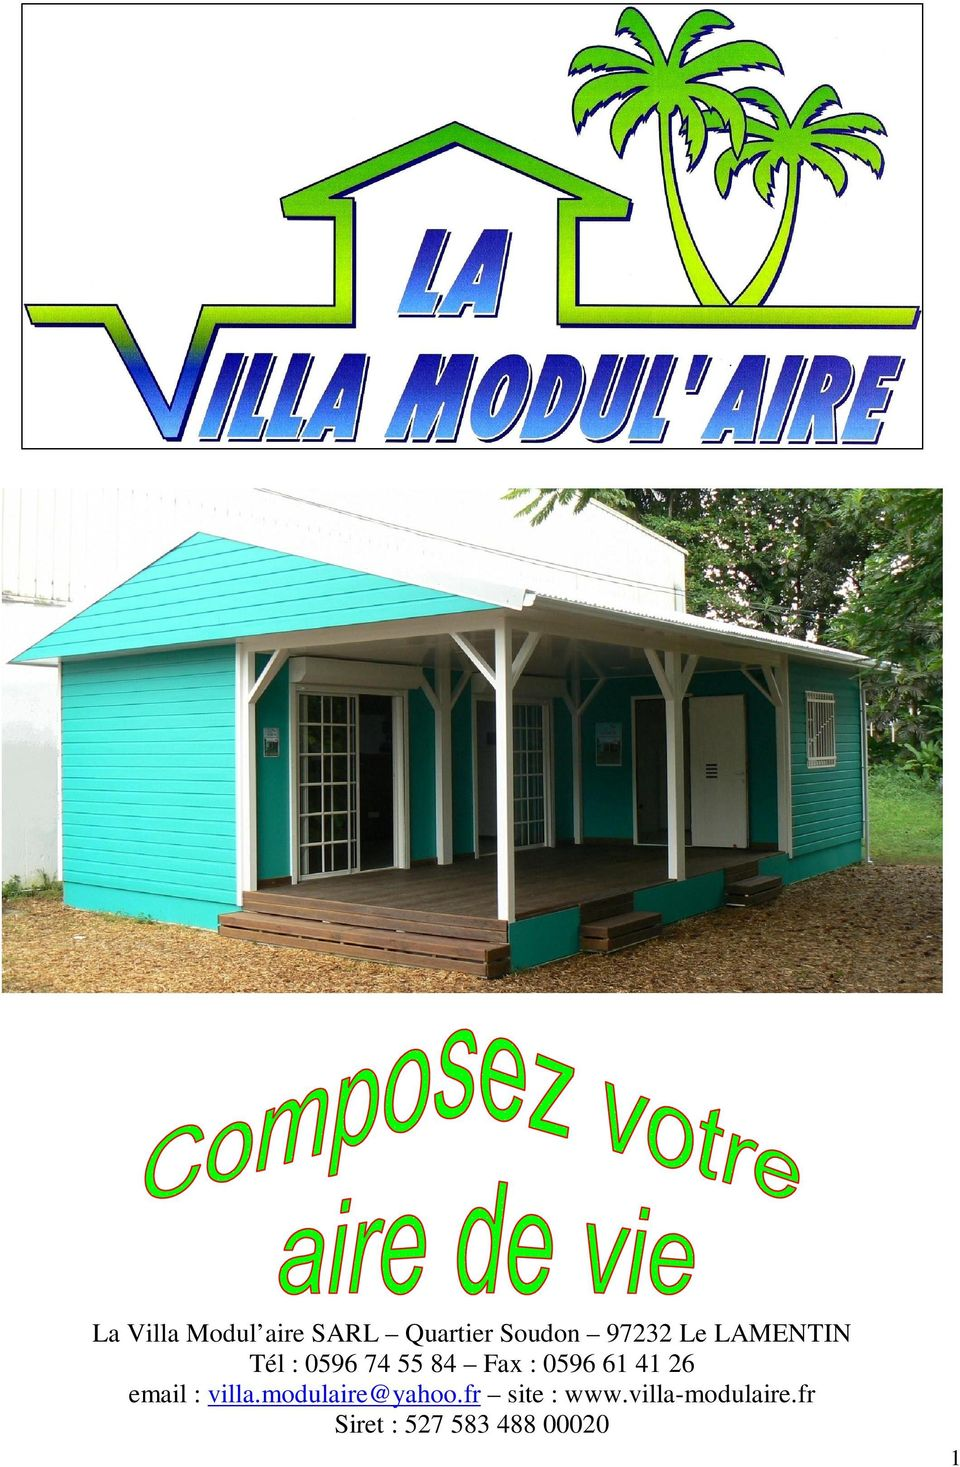 41 26 email : villa.modulaire@yahoo.